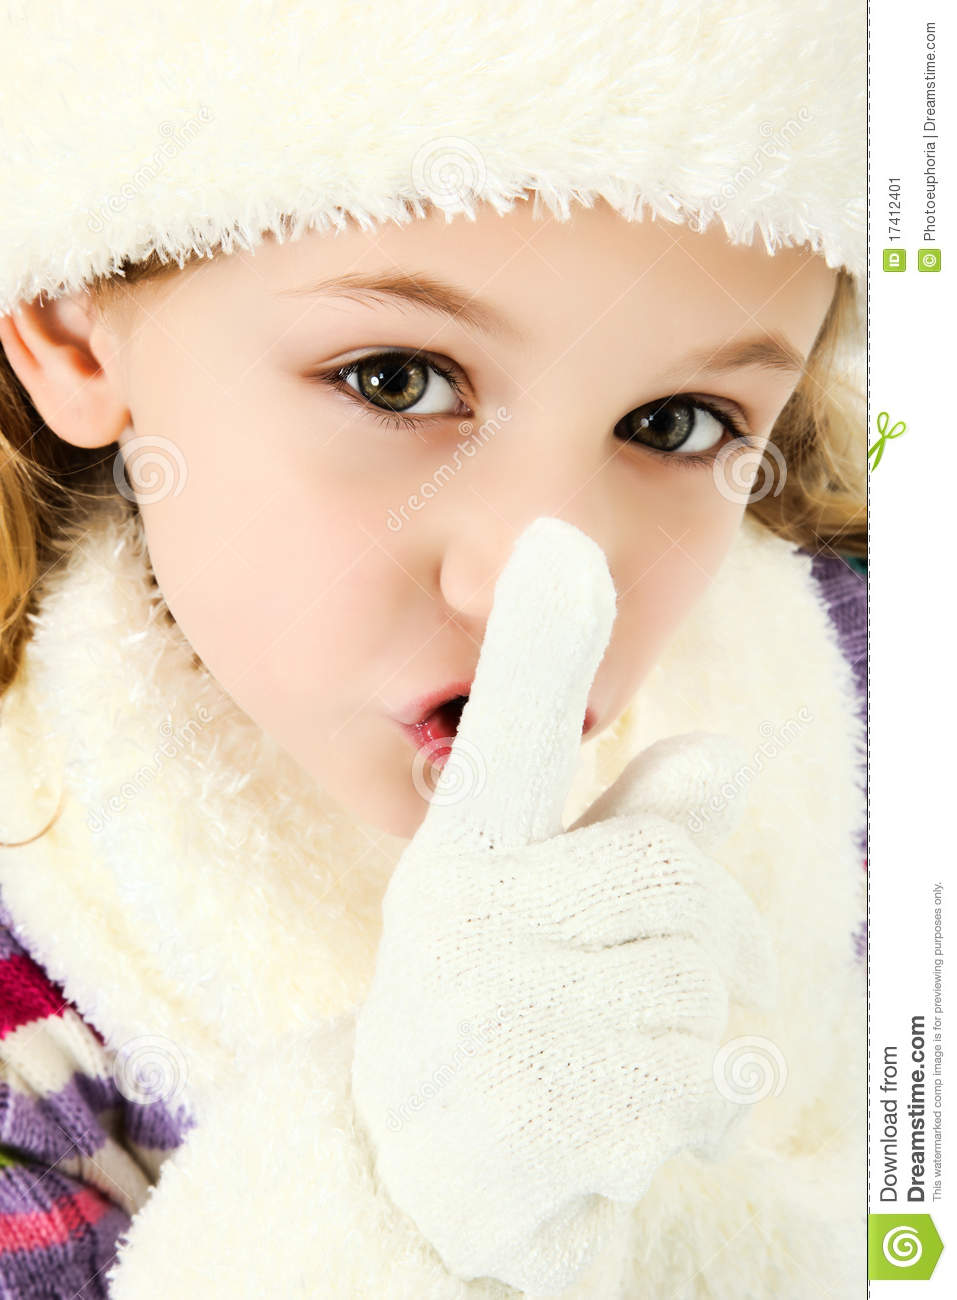 shhhhh quiet girl keeping secret stock image image of caucasian